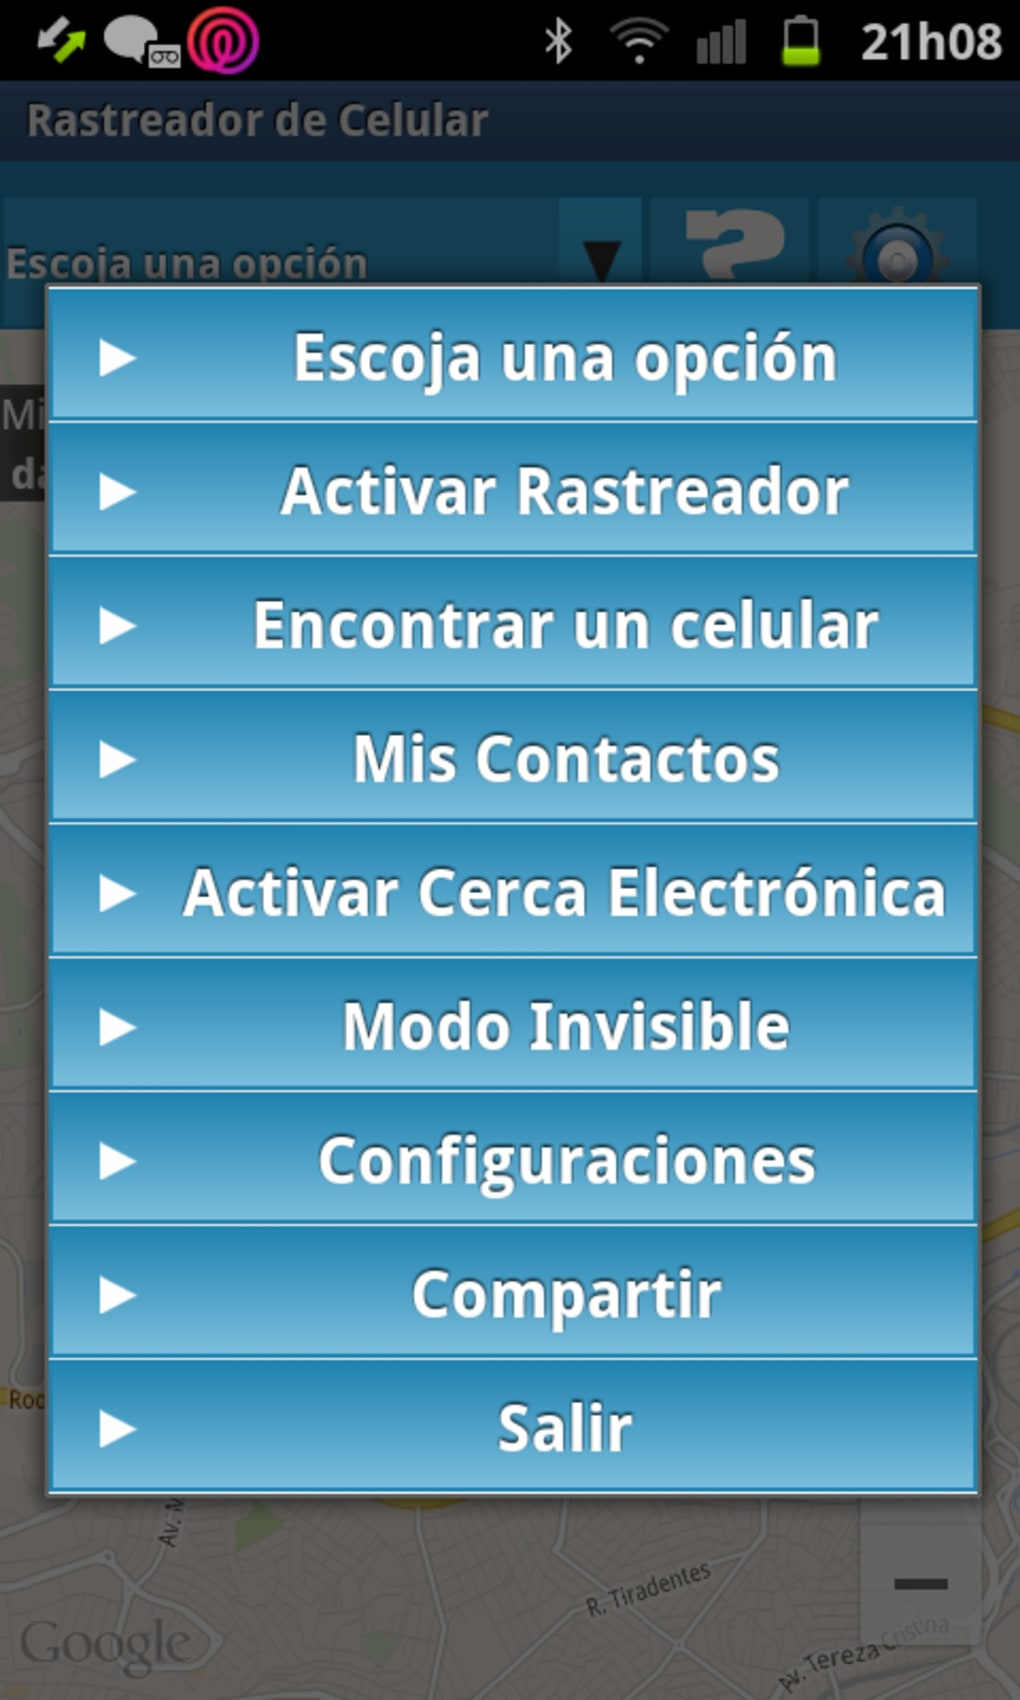 rastreador de celular hotmail